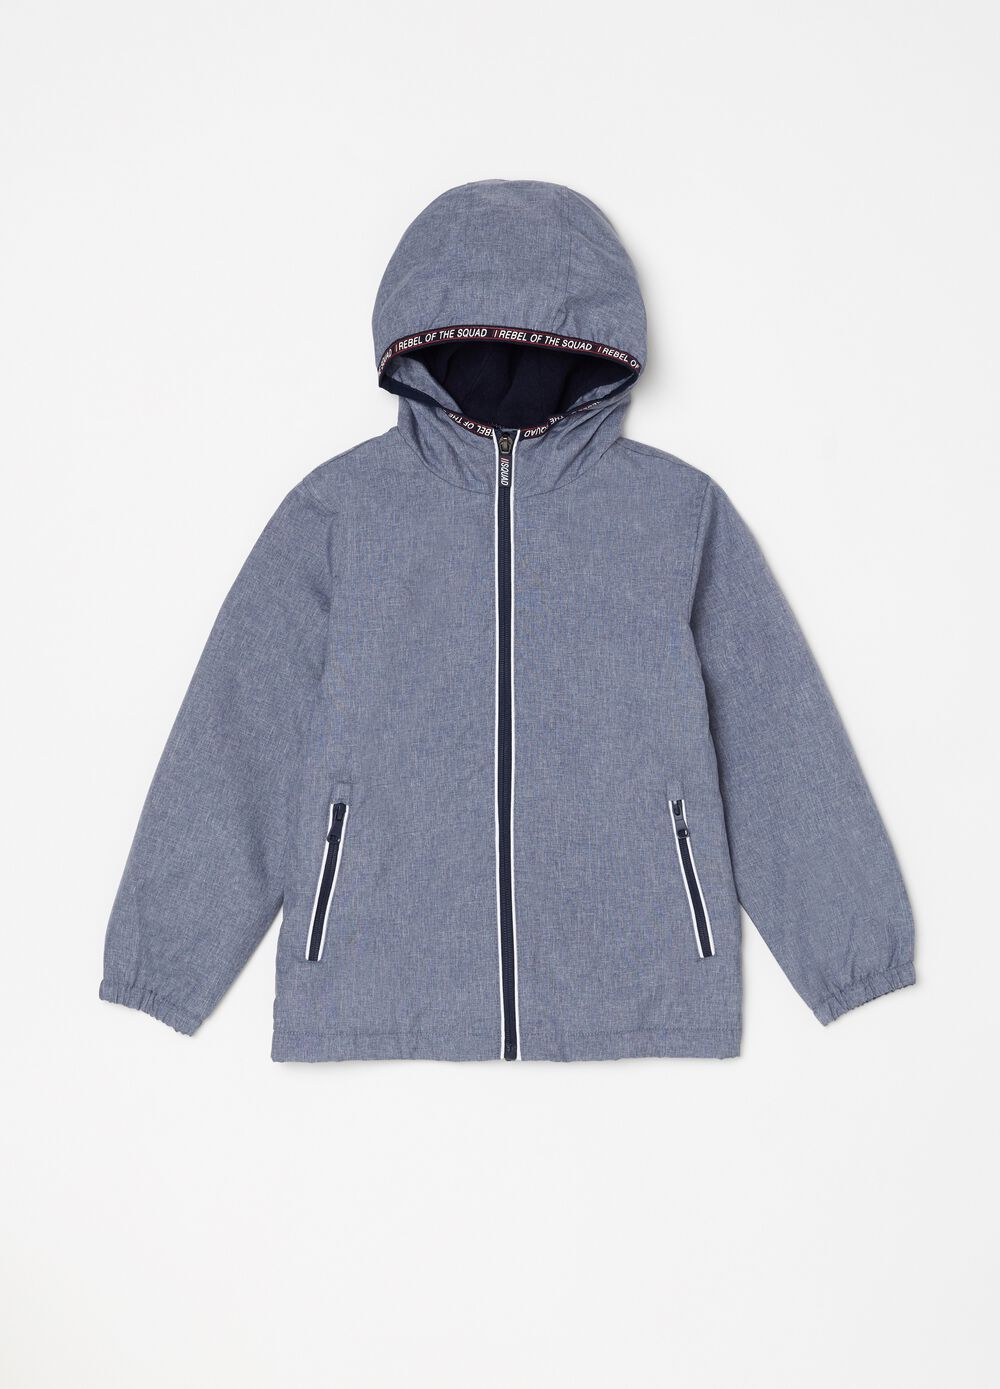 Lightweight jacket with high mélange neck